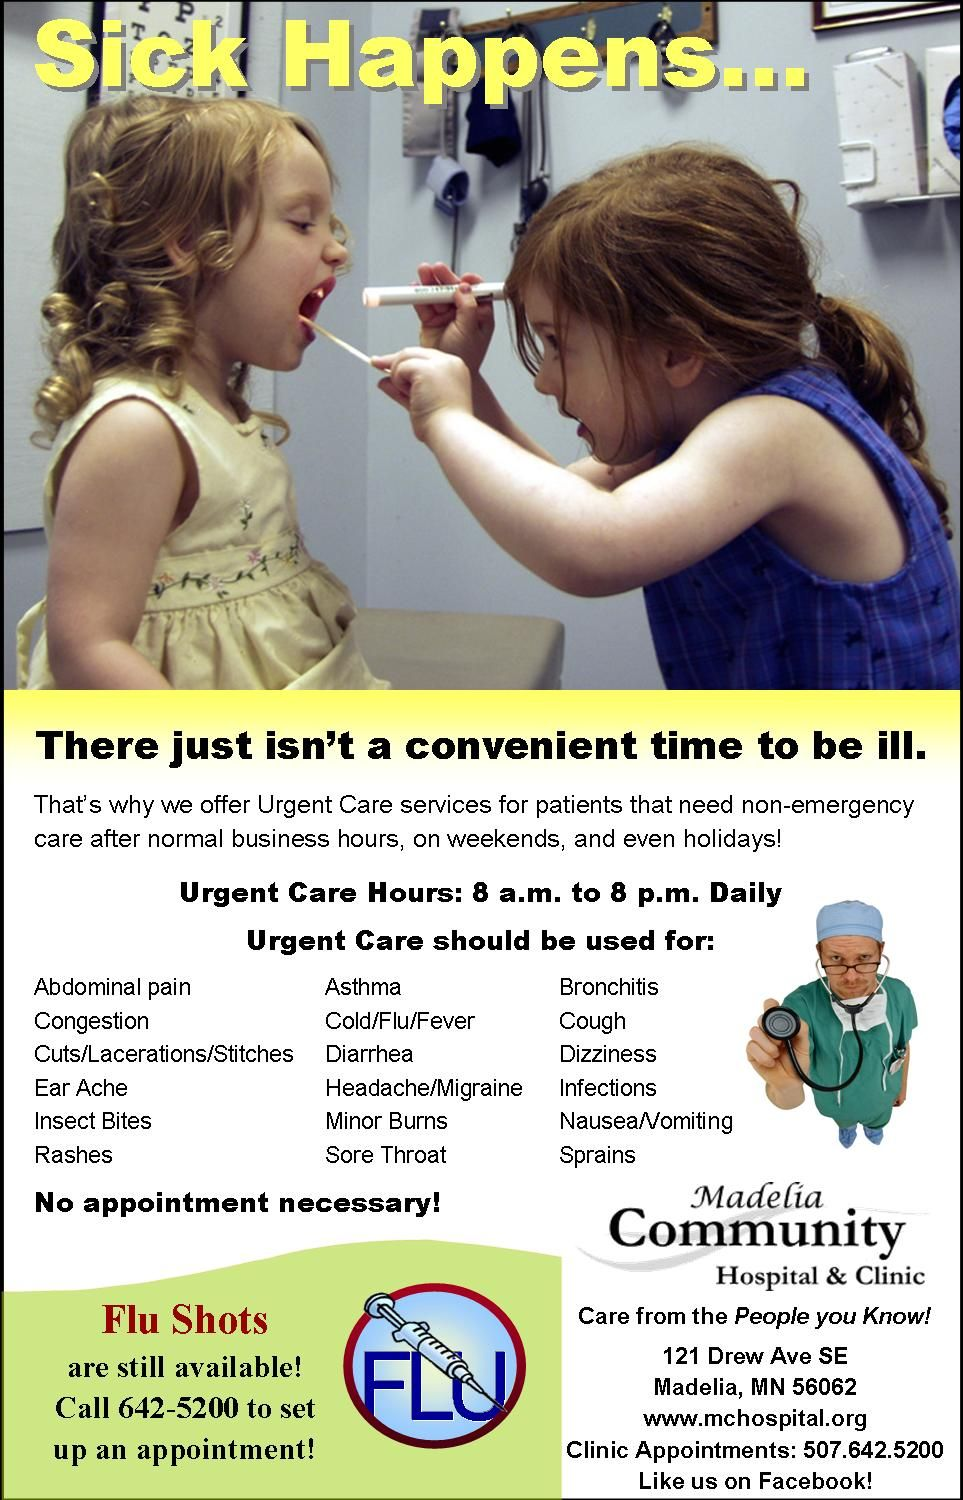 Pin on Advertisements for MCHC